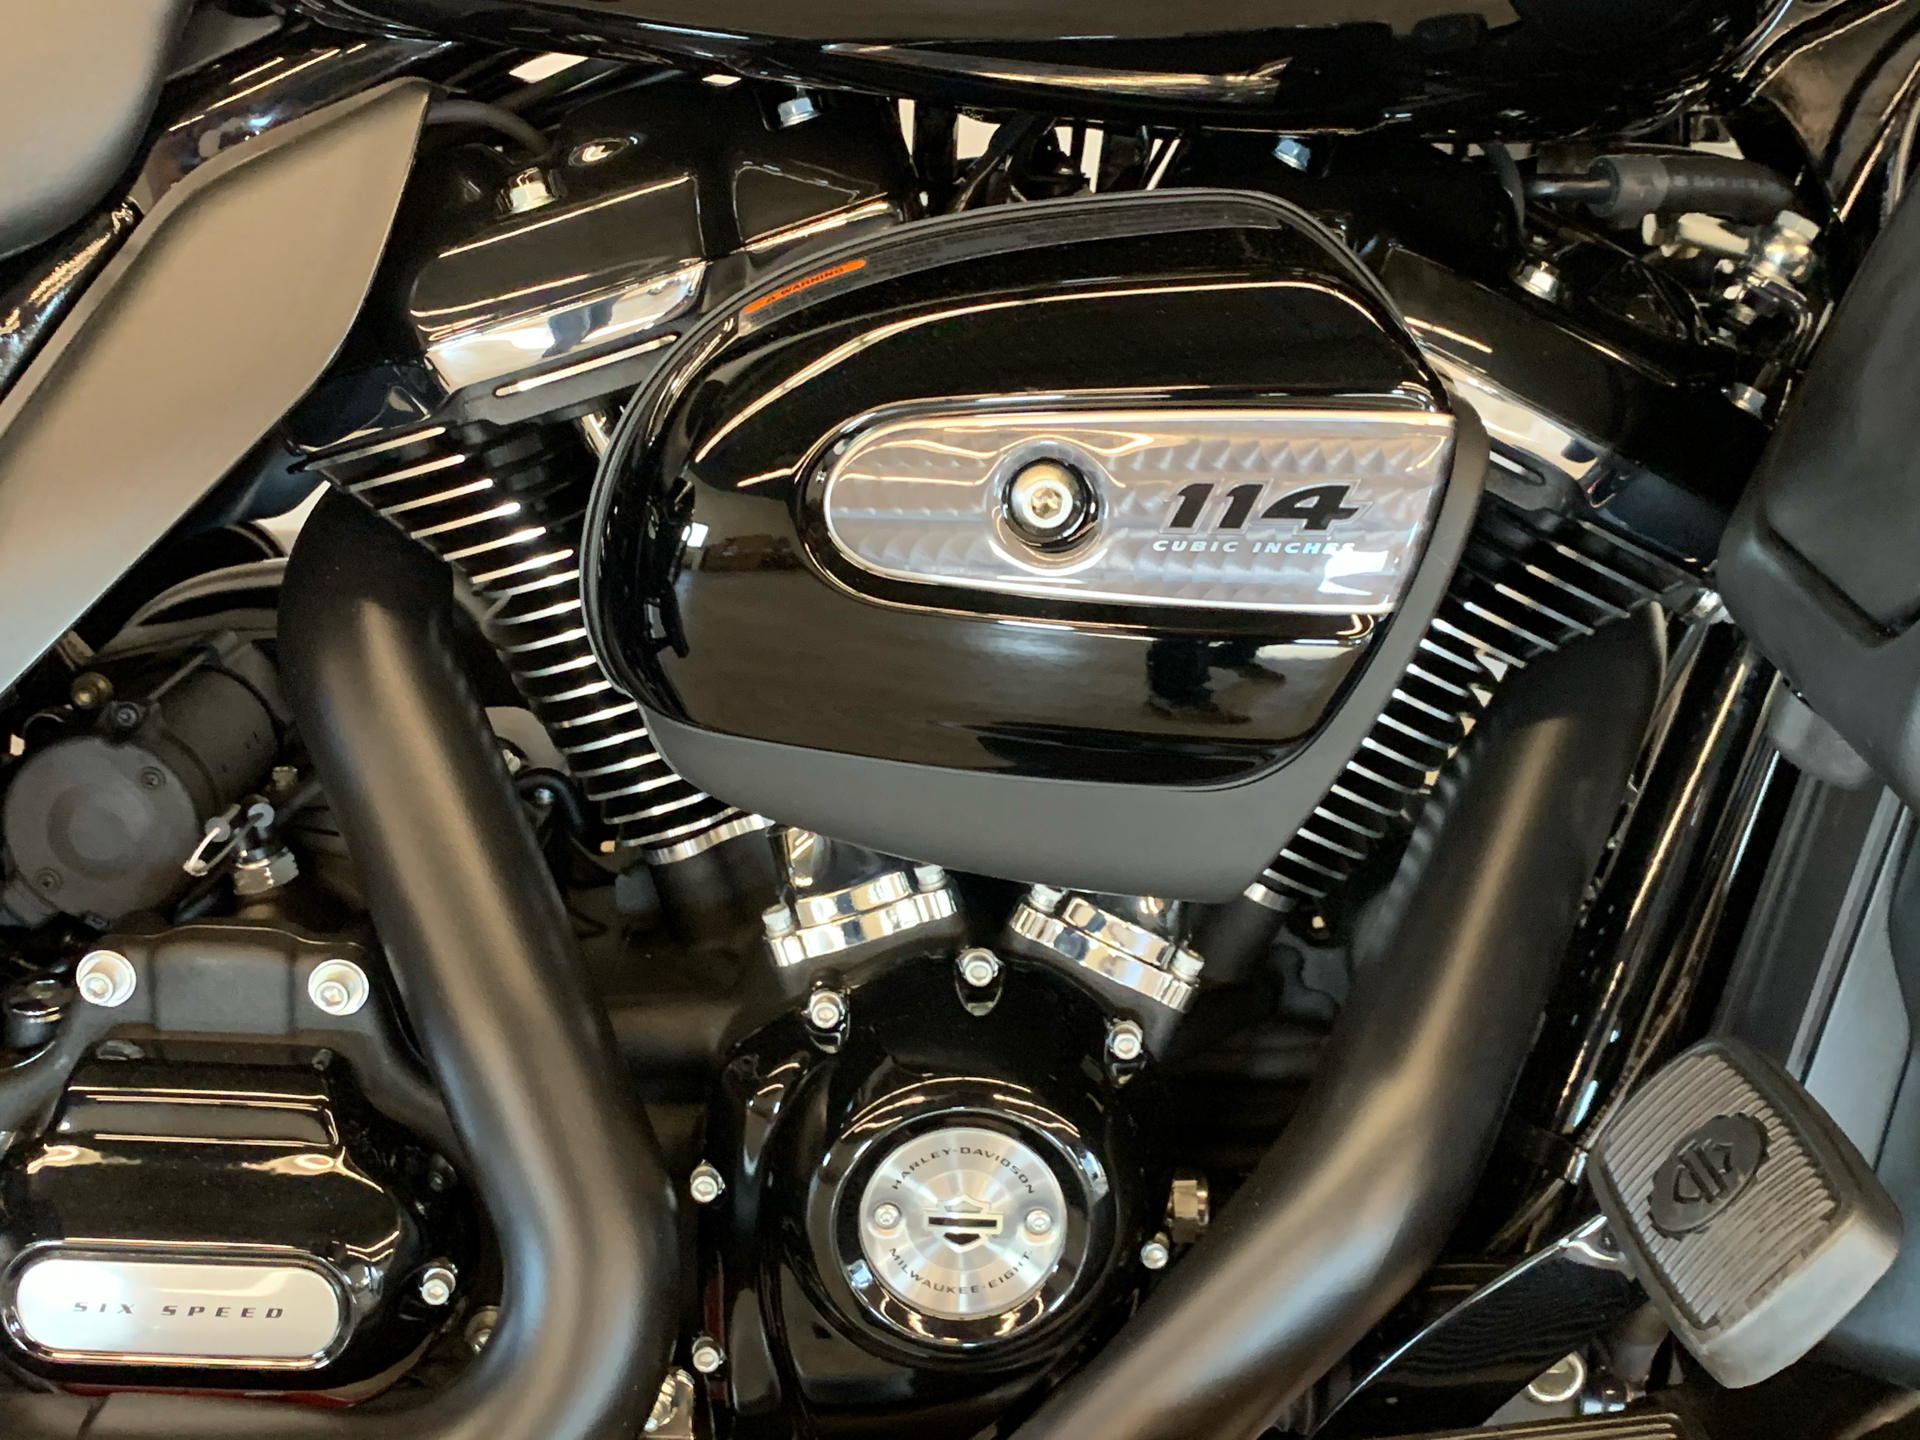 2021 Harley-Davidson ULTRA LIMITED in Flint, Michigan - Photo 8